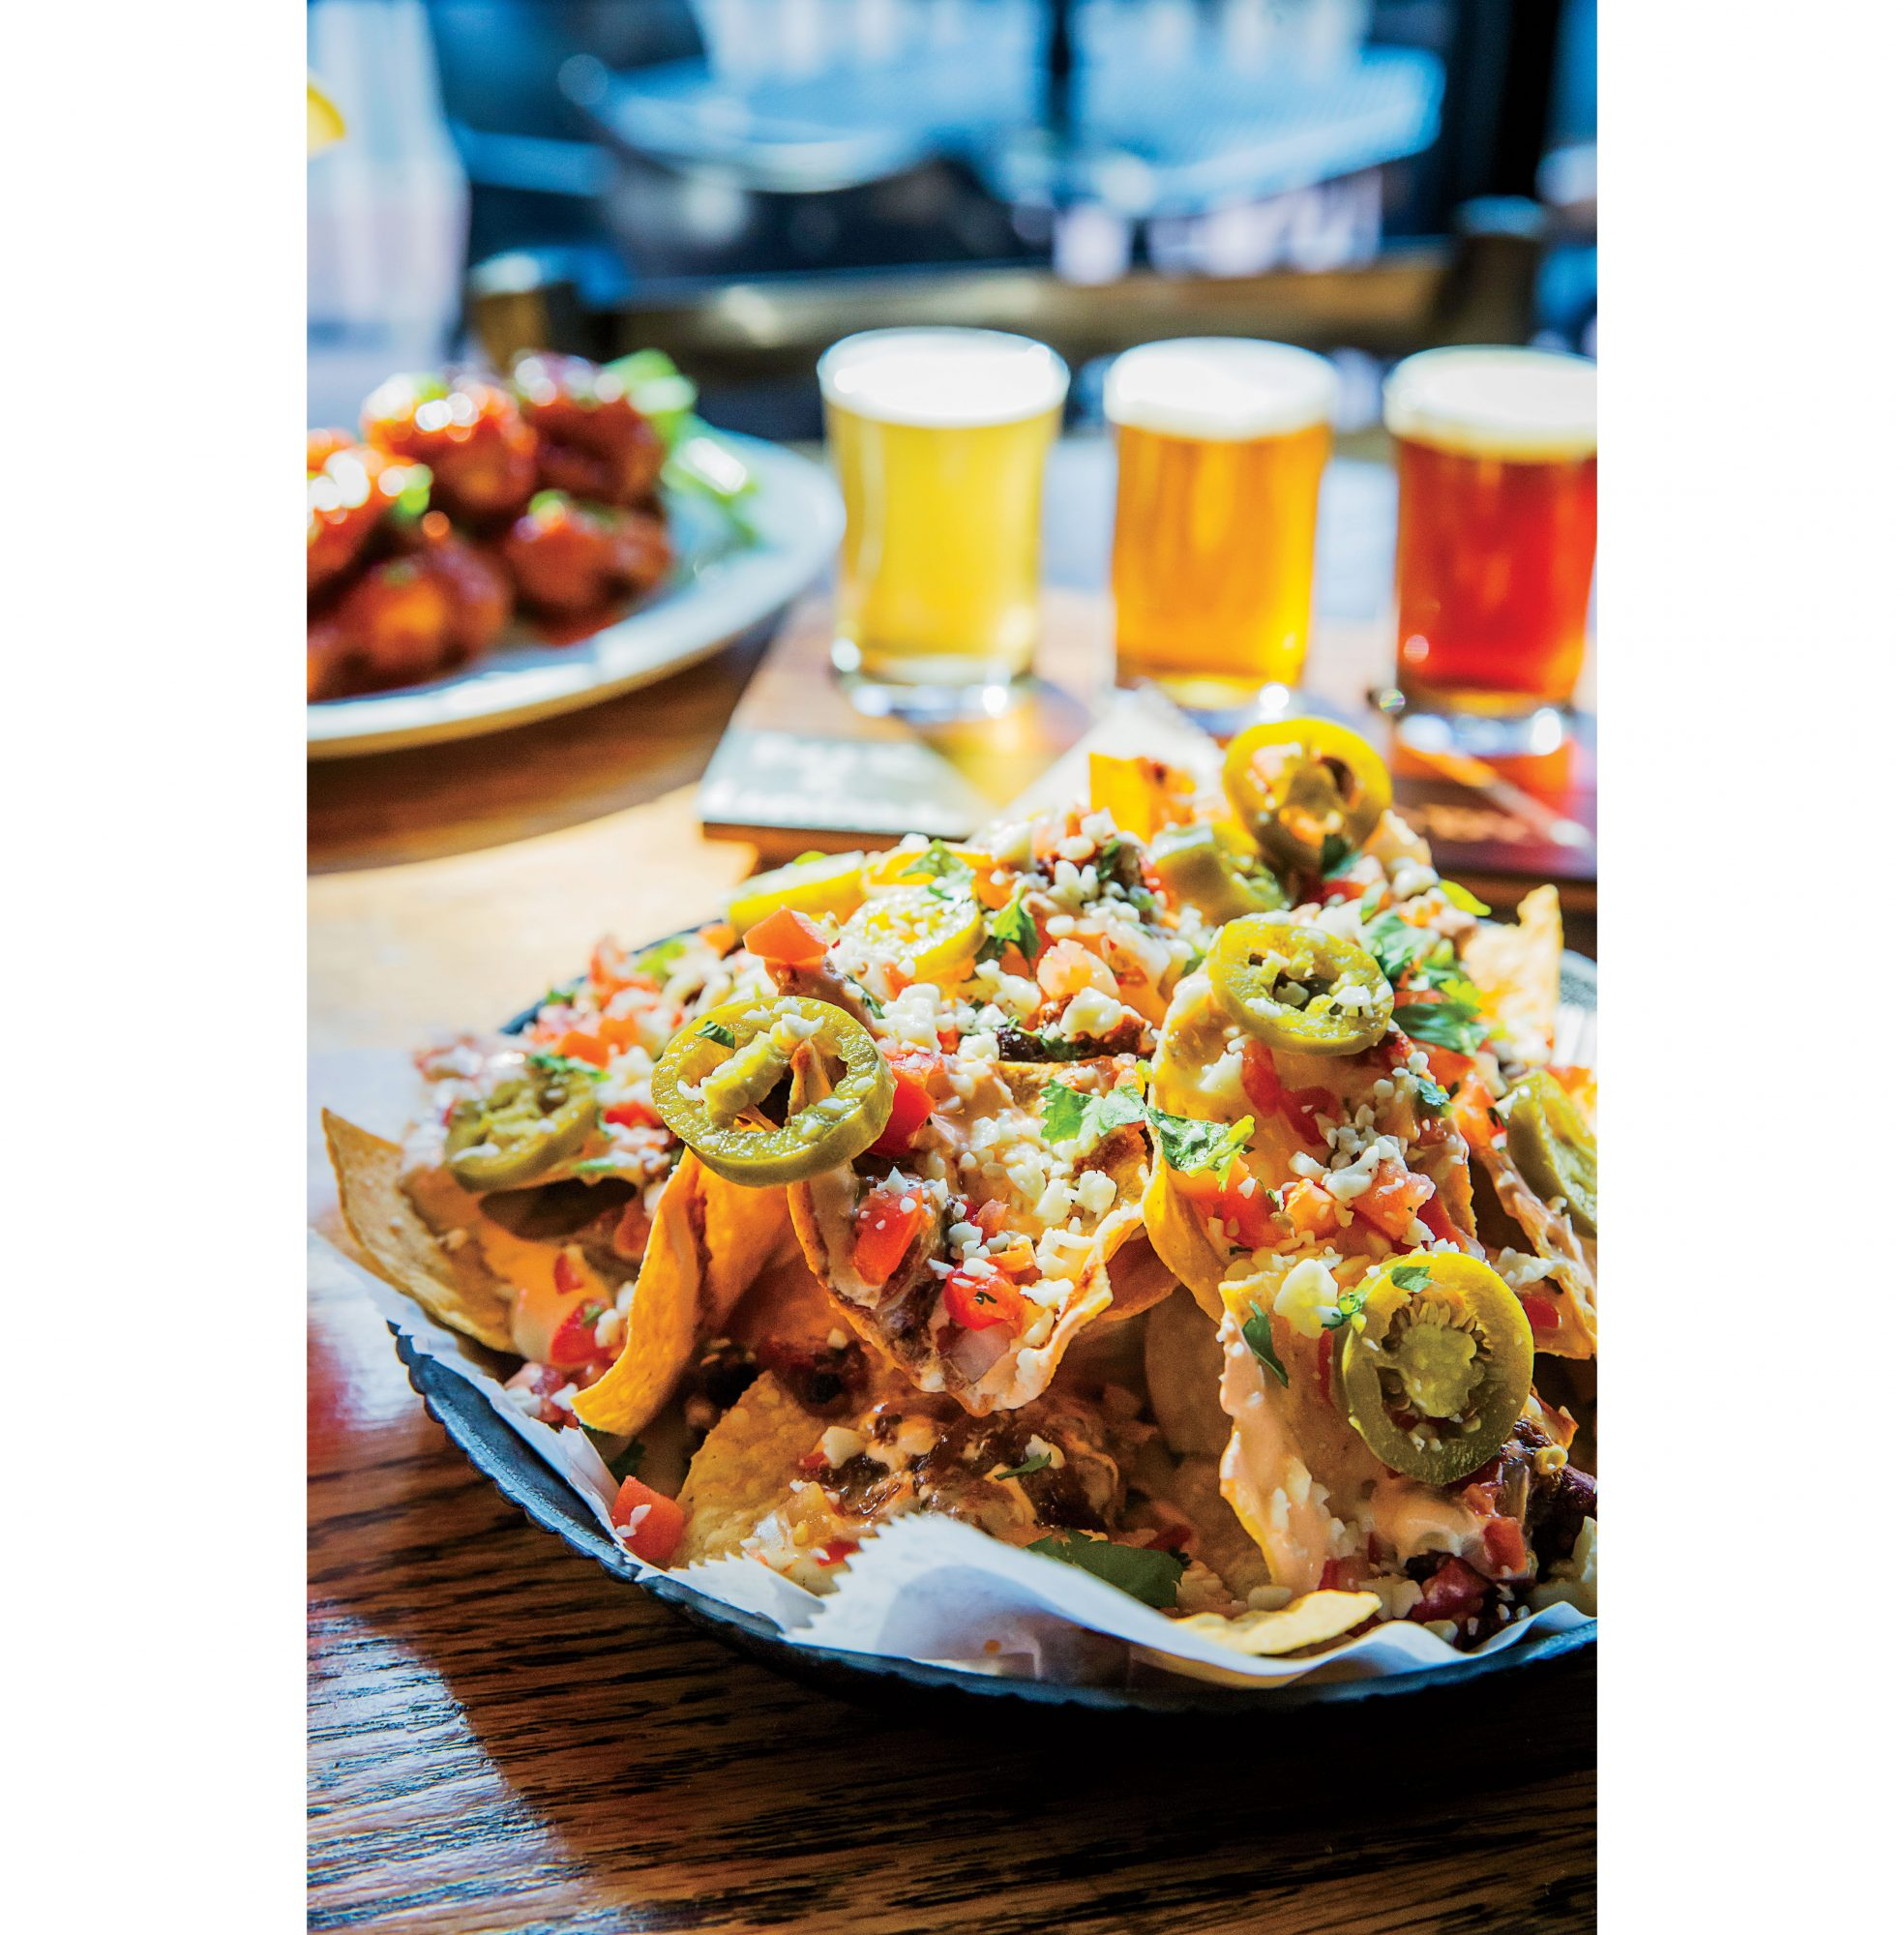 Nachos at Black Sheep Burrito & Brews